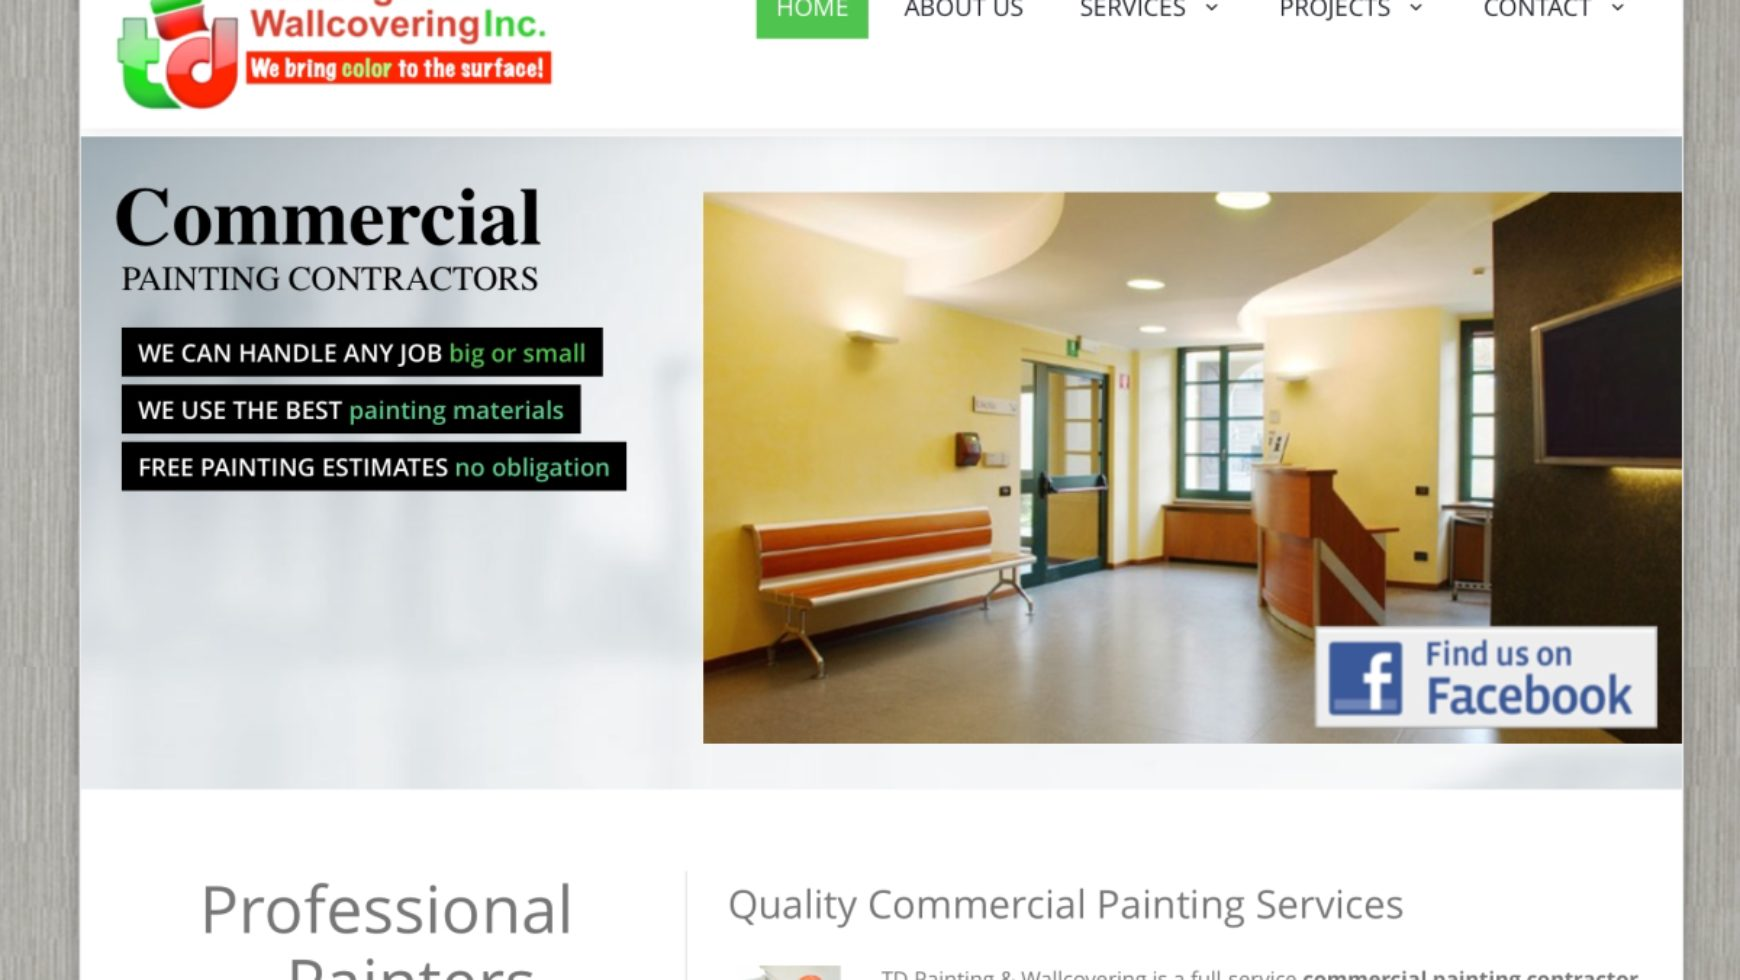 TD Painting and Wallcovering Website – Detroit, MI